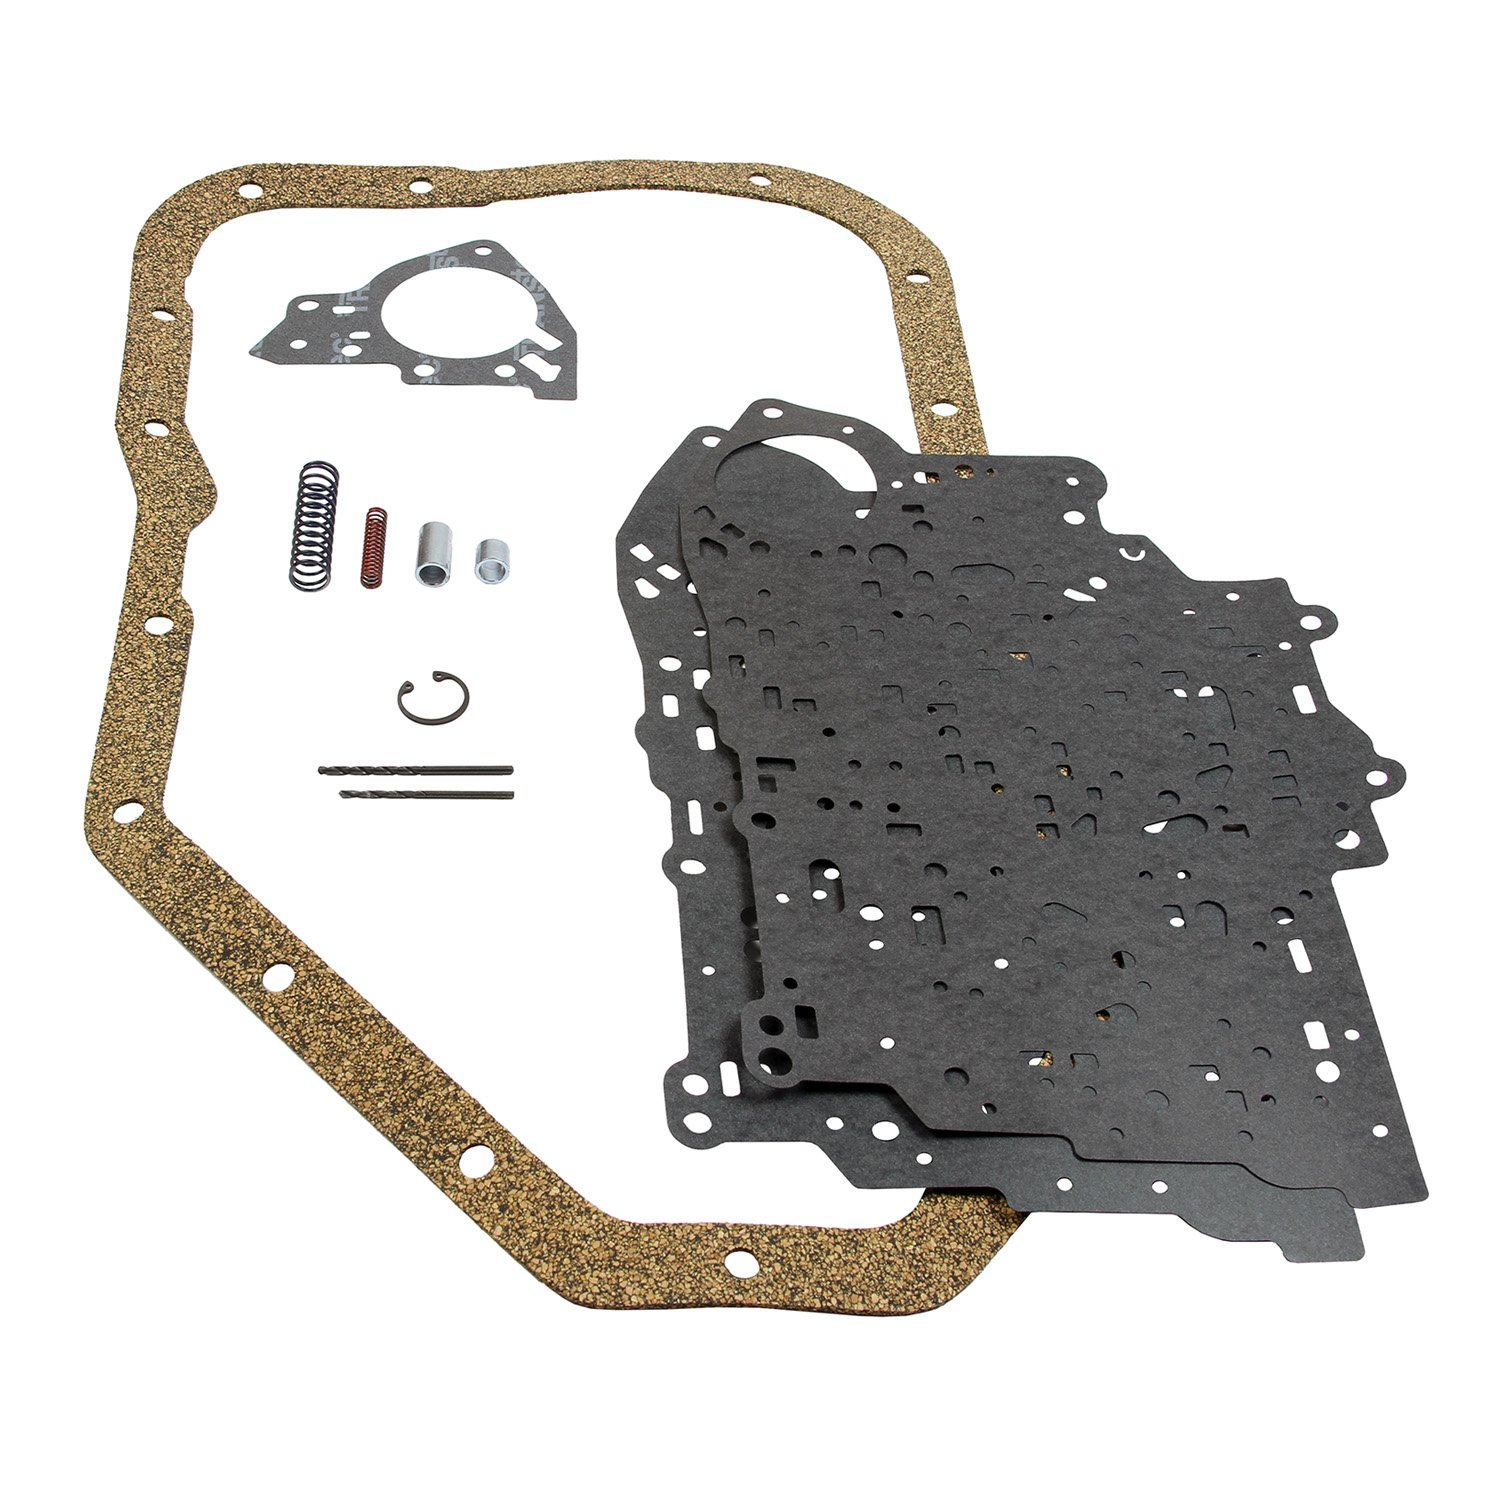 GM TH2004R Transmissions B/&M 35265 B/&M Shift Improver Kit